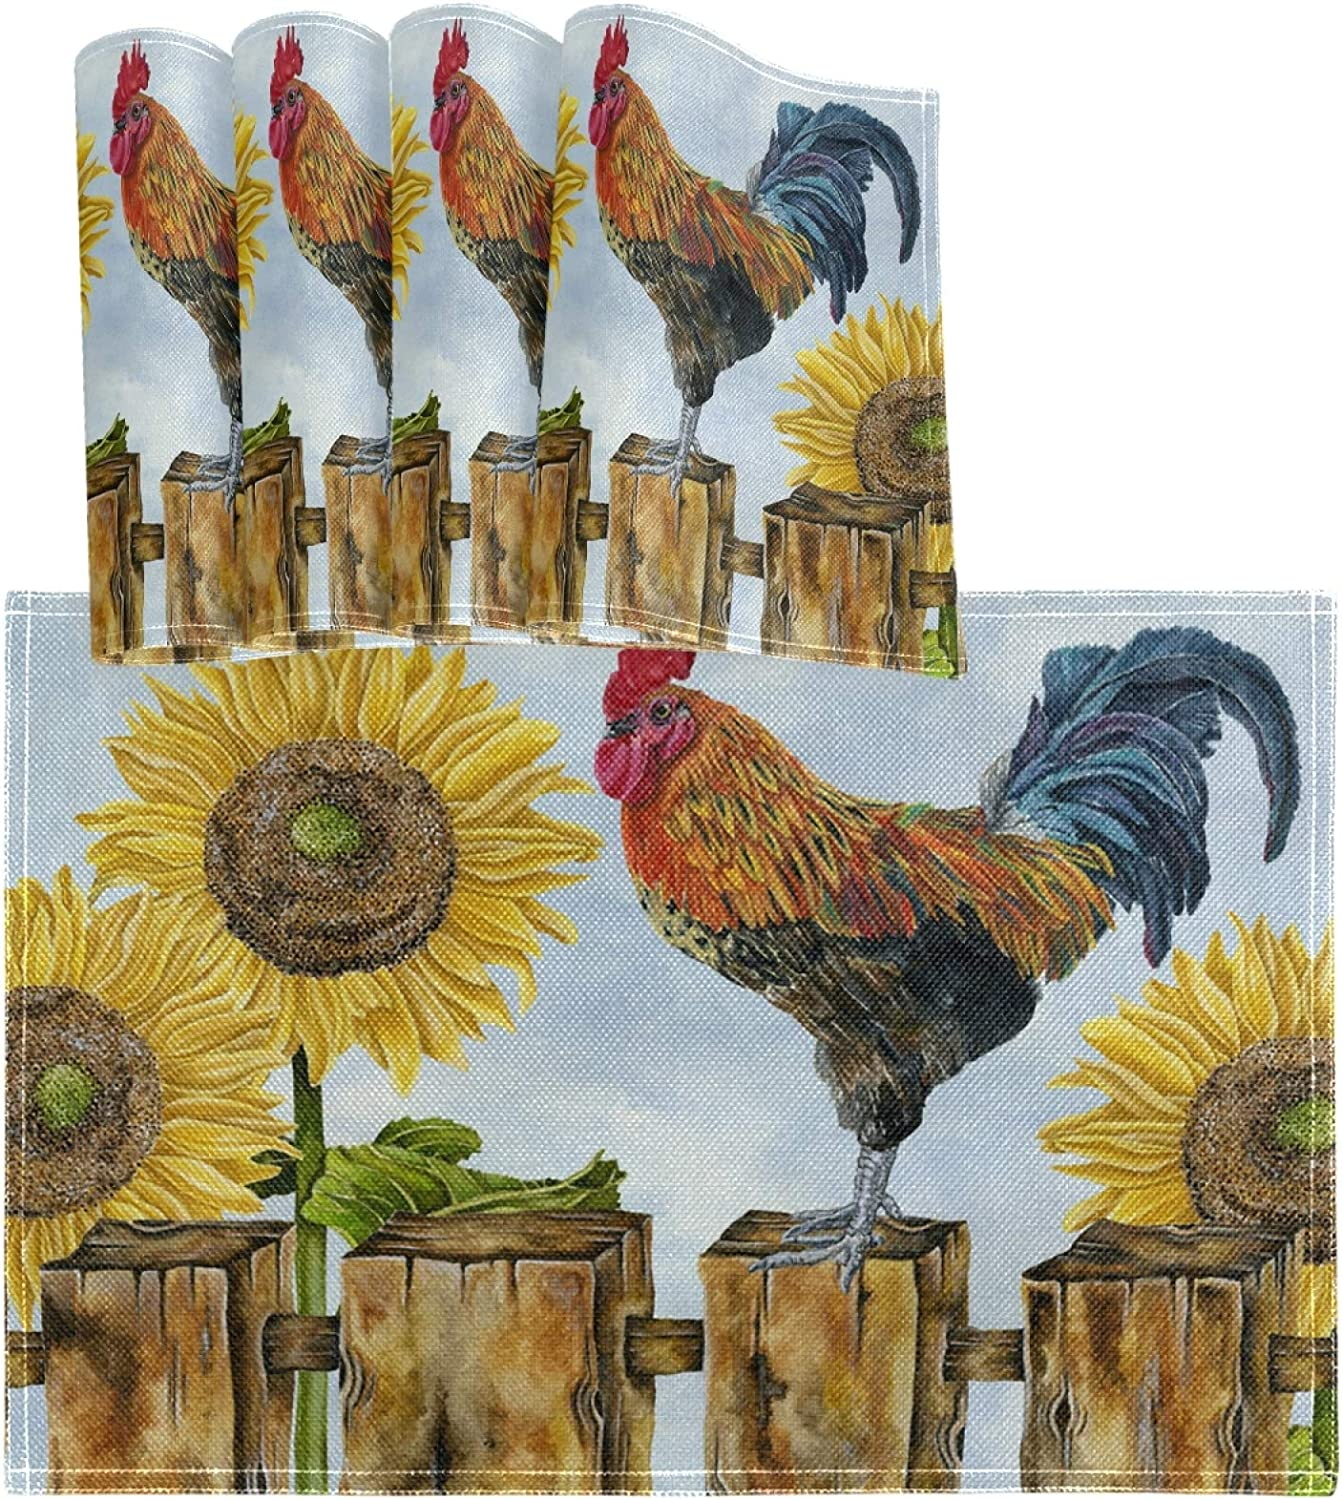 Oarencol Rooster Sunflower Wooden Placemat Table Mats Set of 4, Morning Farmhouse Birds Animal Heat-Resistant Washable Clean Kitchen Place Mats for Dining Table Decoration